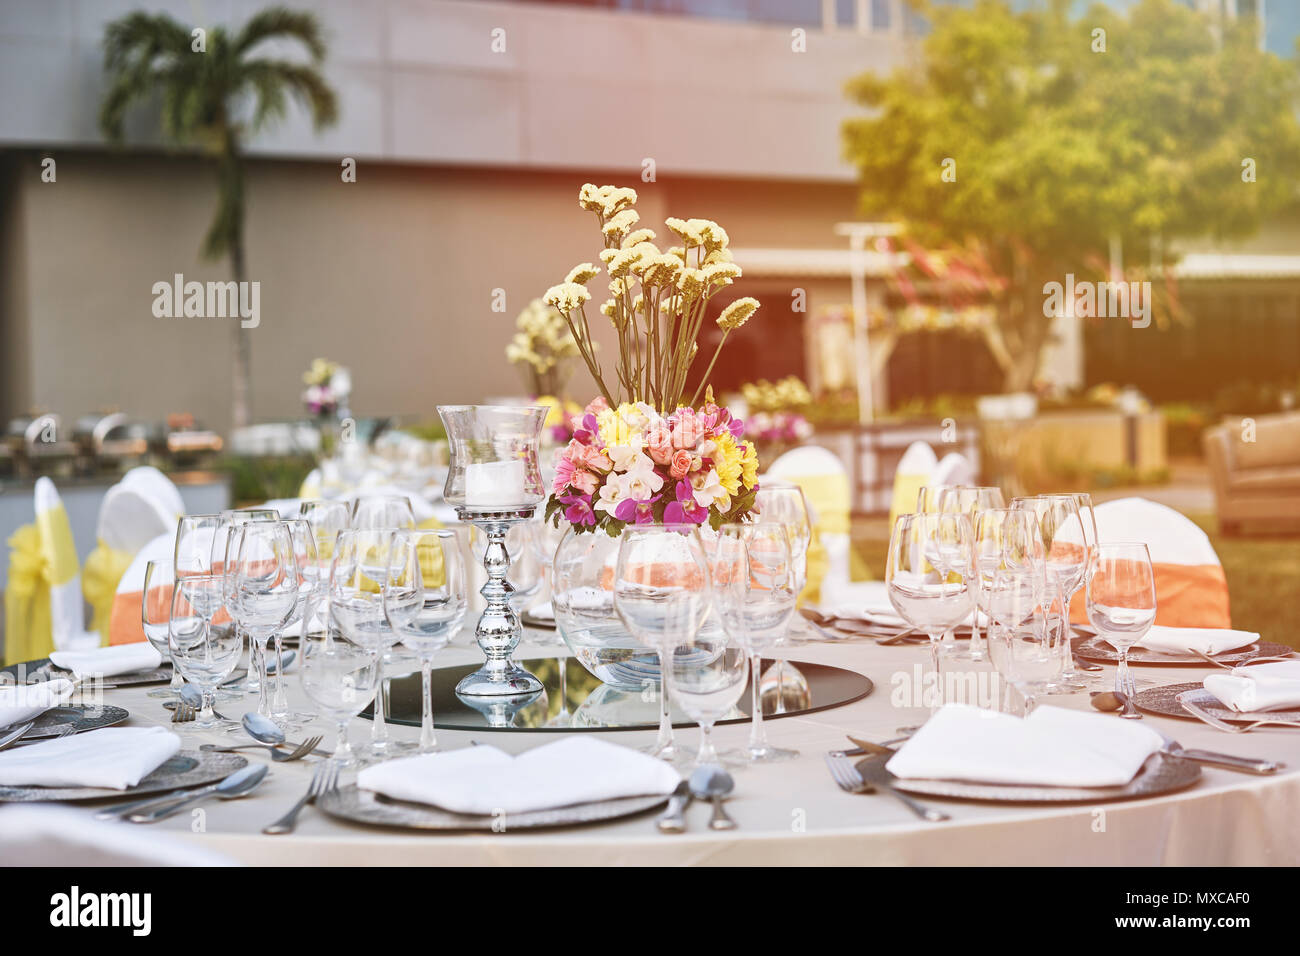 Wedding Reception Dinner Table Setting With Empty Glasses Of Water, Wine  And Dinnerwear With Flower Decoration, And White Fabric Cover Chairs With  Yel